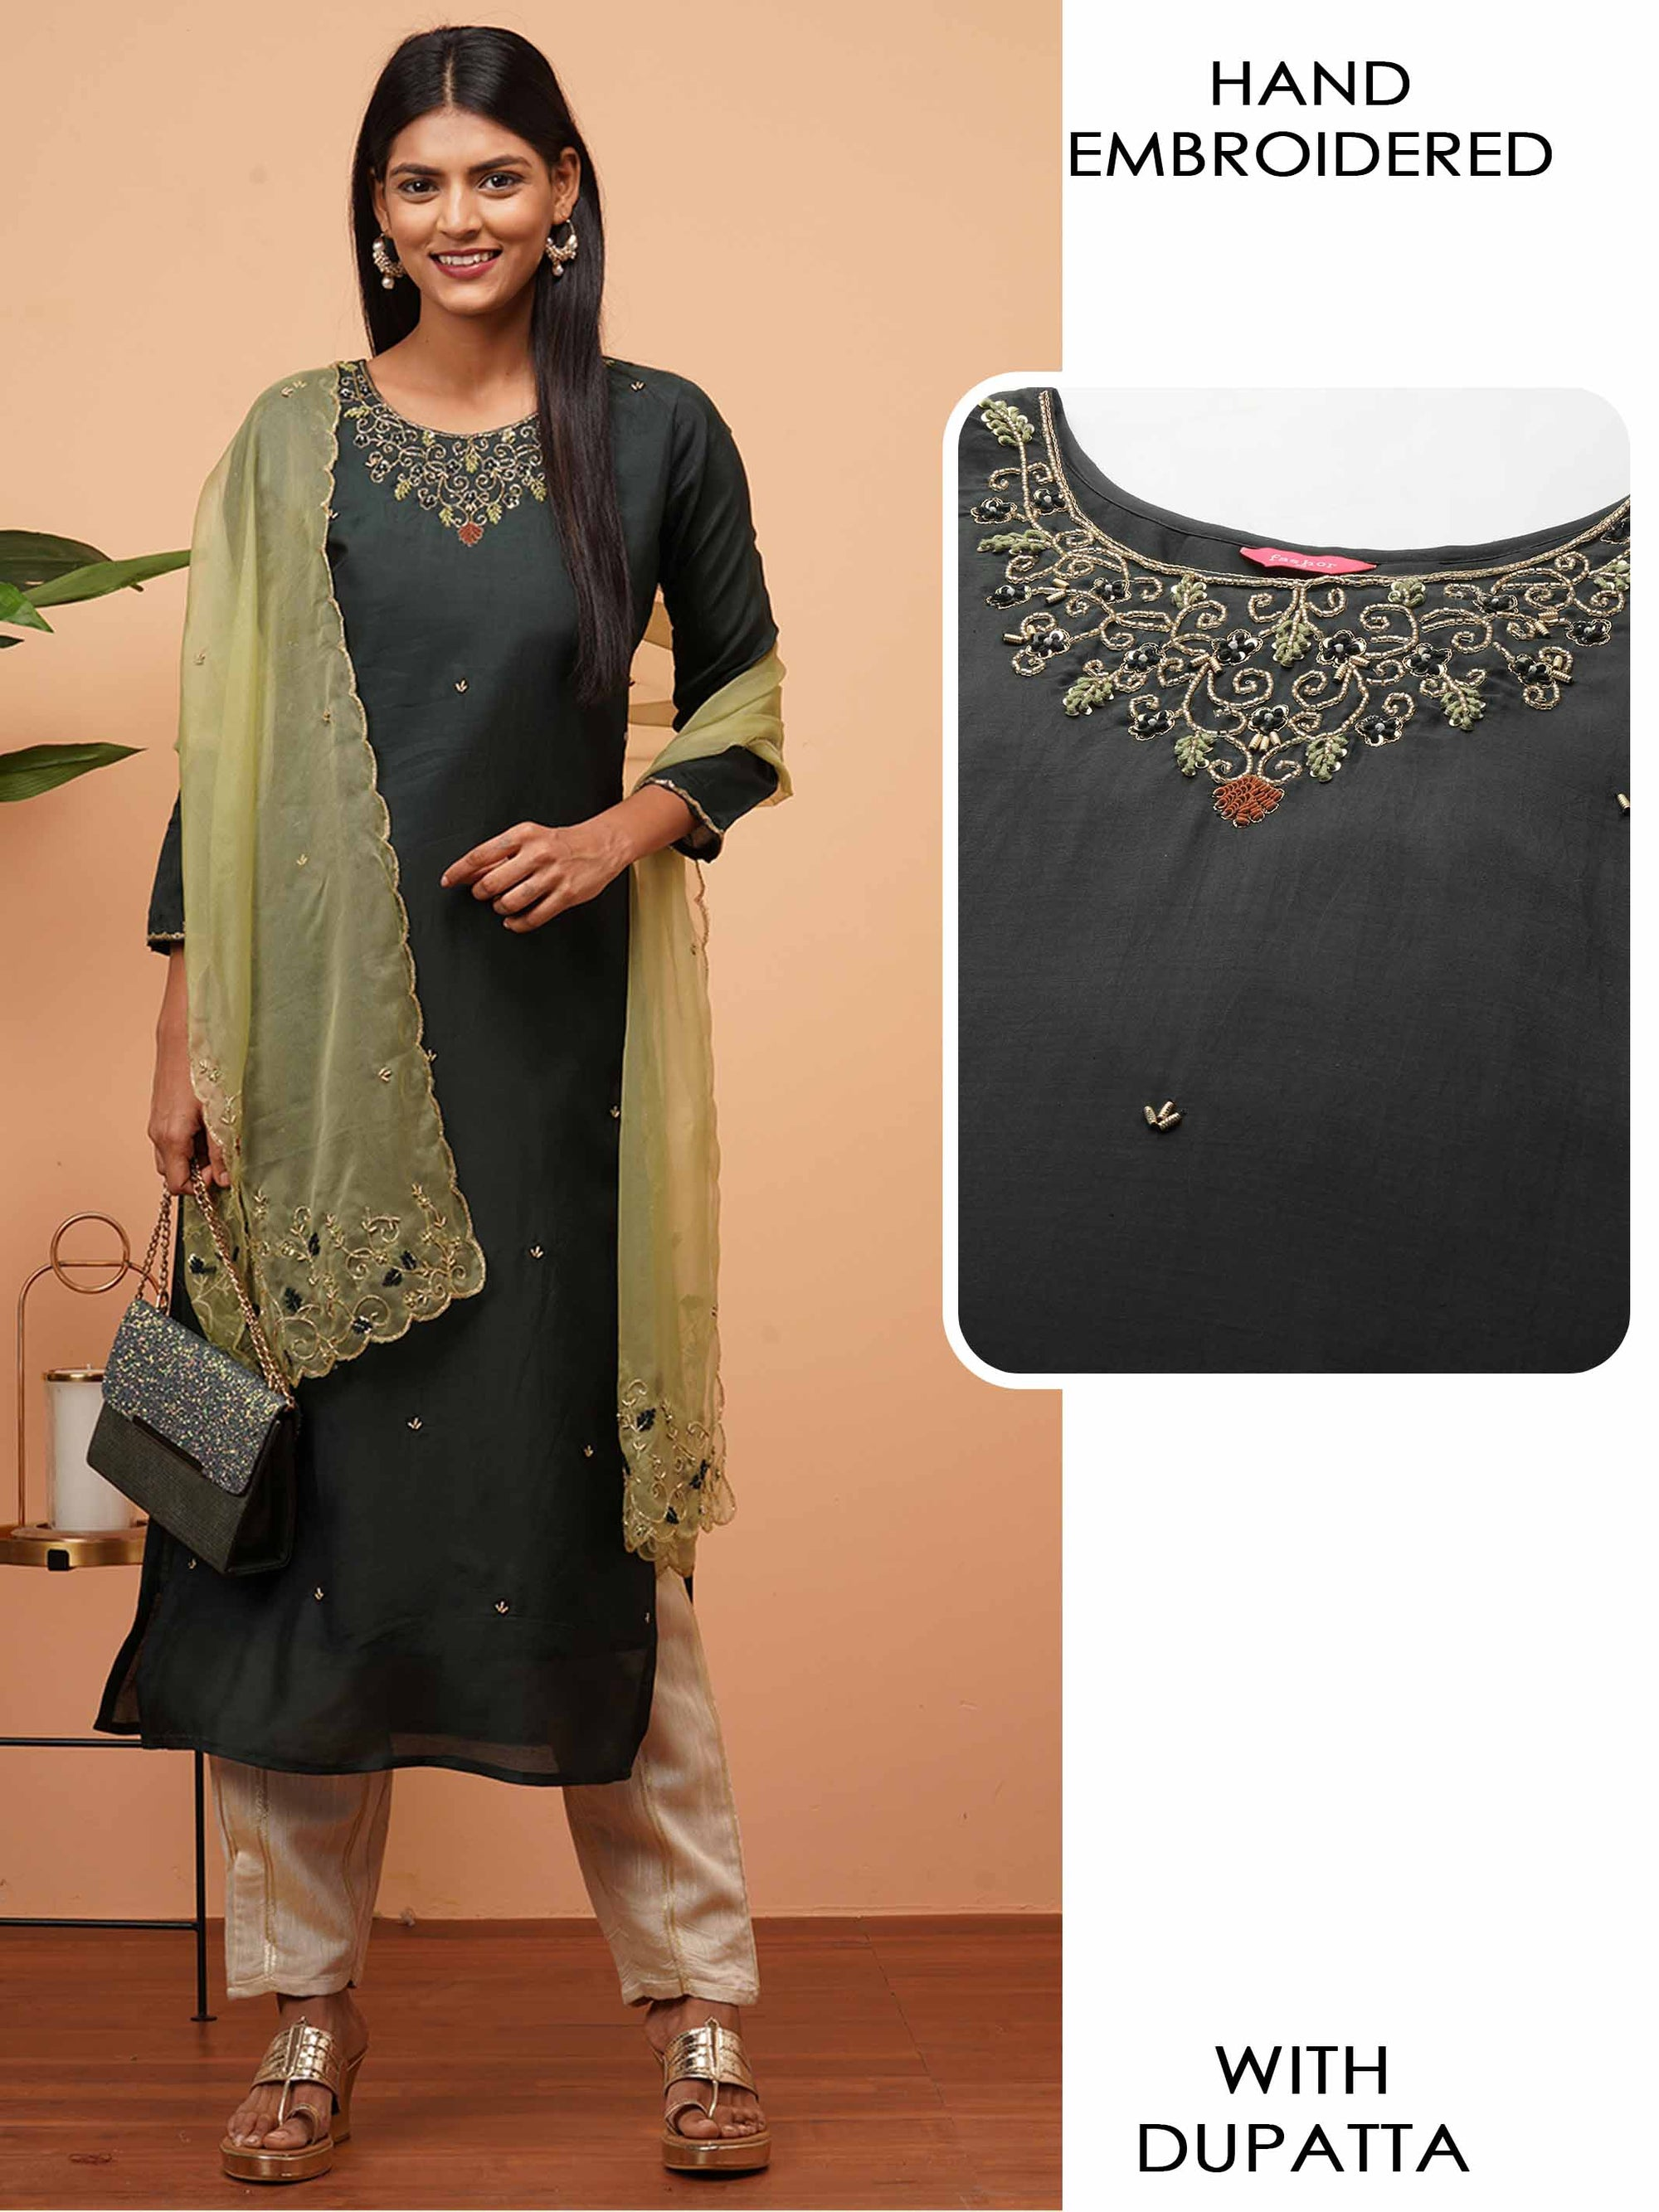 Heavy Hand Embroidered Straight Kurta with Hand Embroidered Scallop Dupatta - Emerald Green